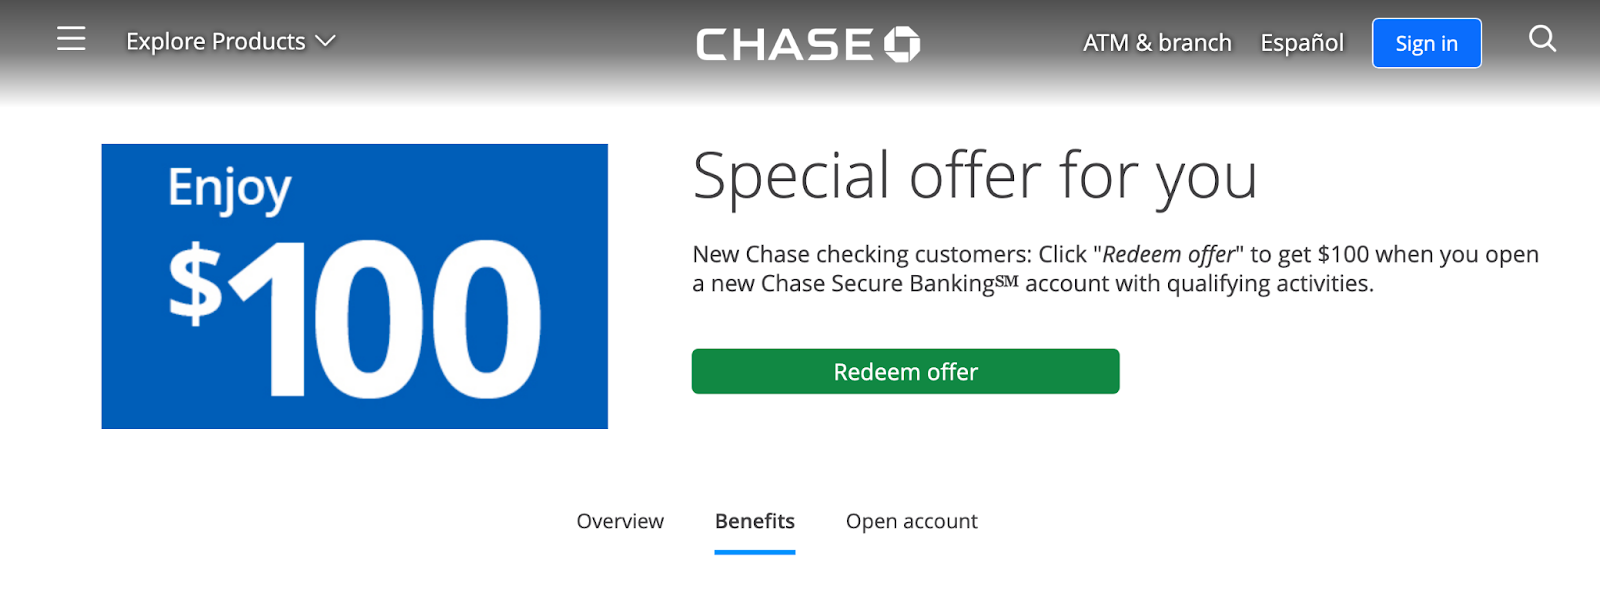 Chase Secure Banking Review: Corporate Banking with Online Convenience - Redeem offer